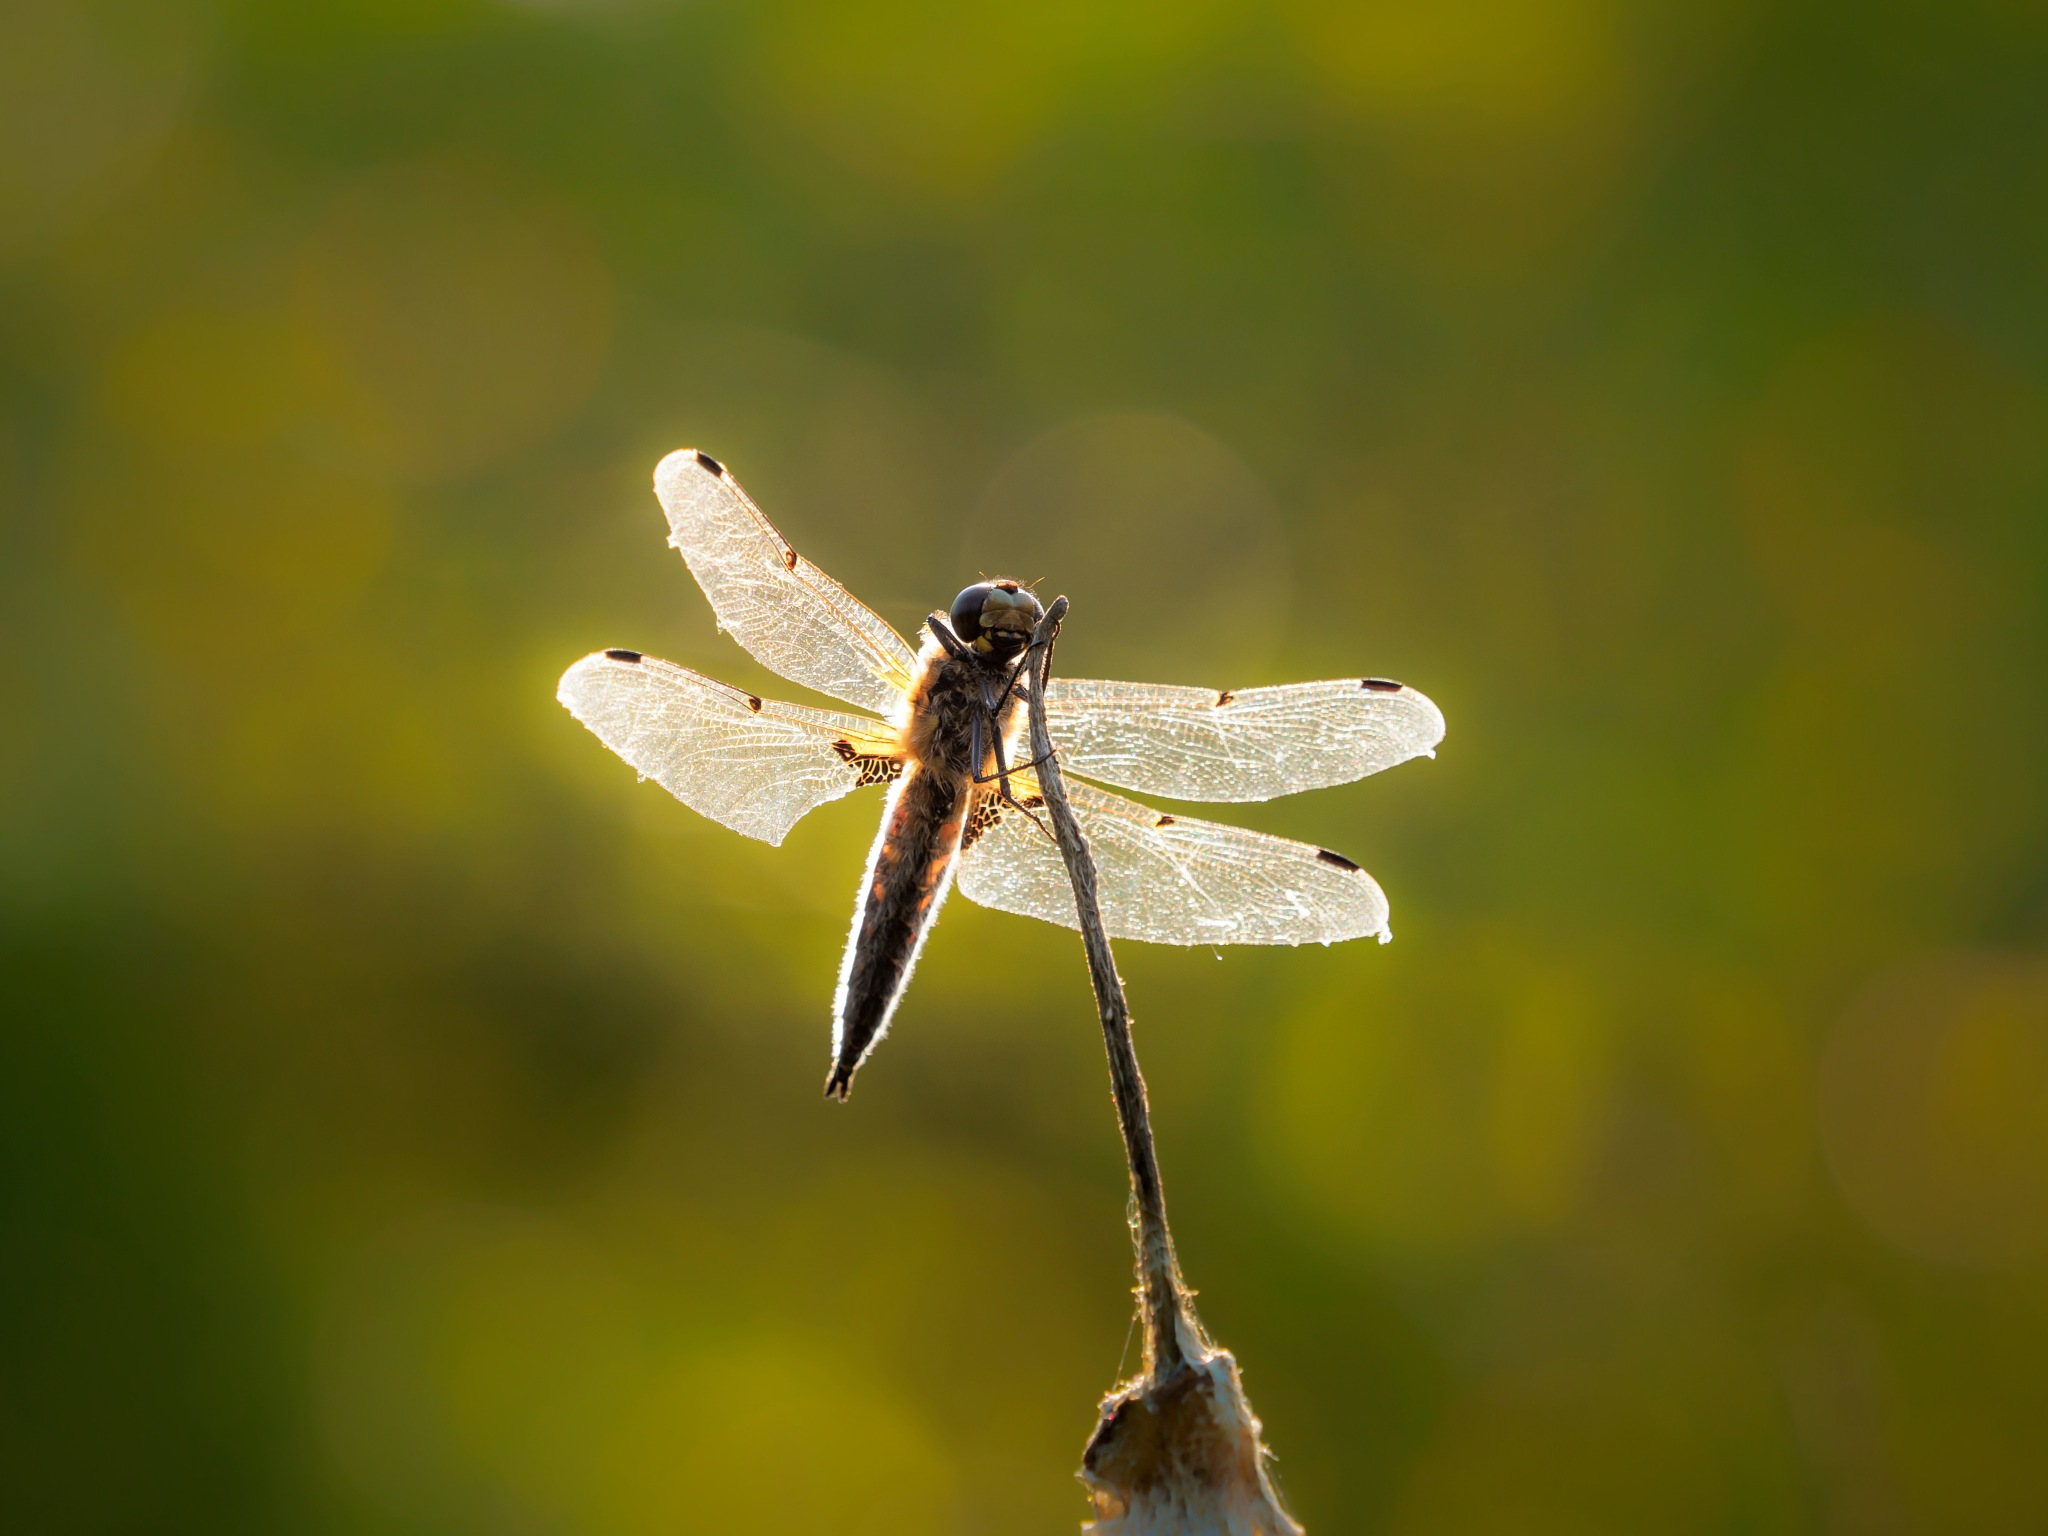 Simple dragonfly by Sarah Walters